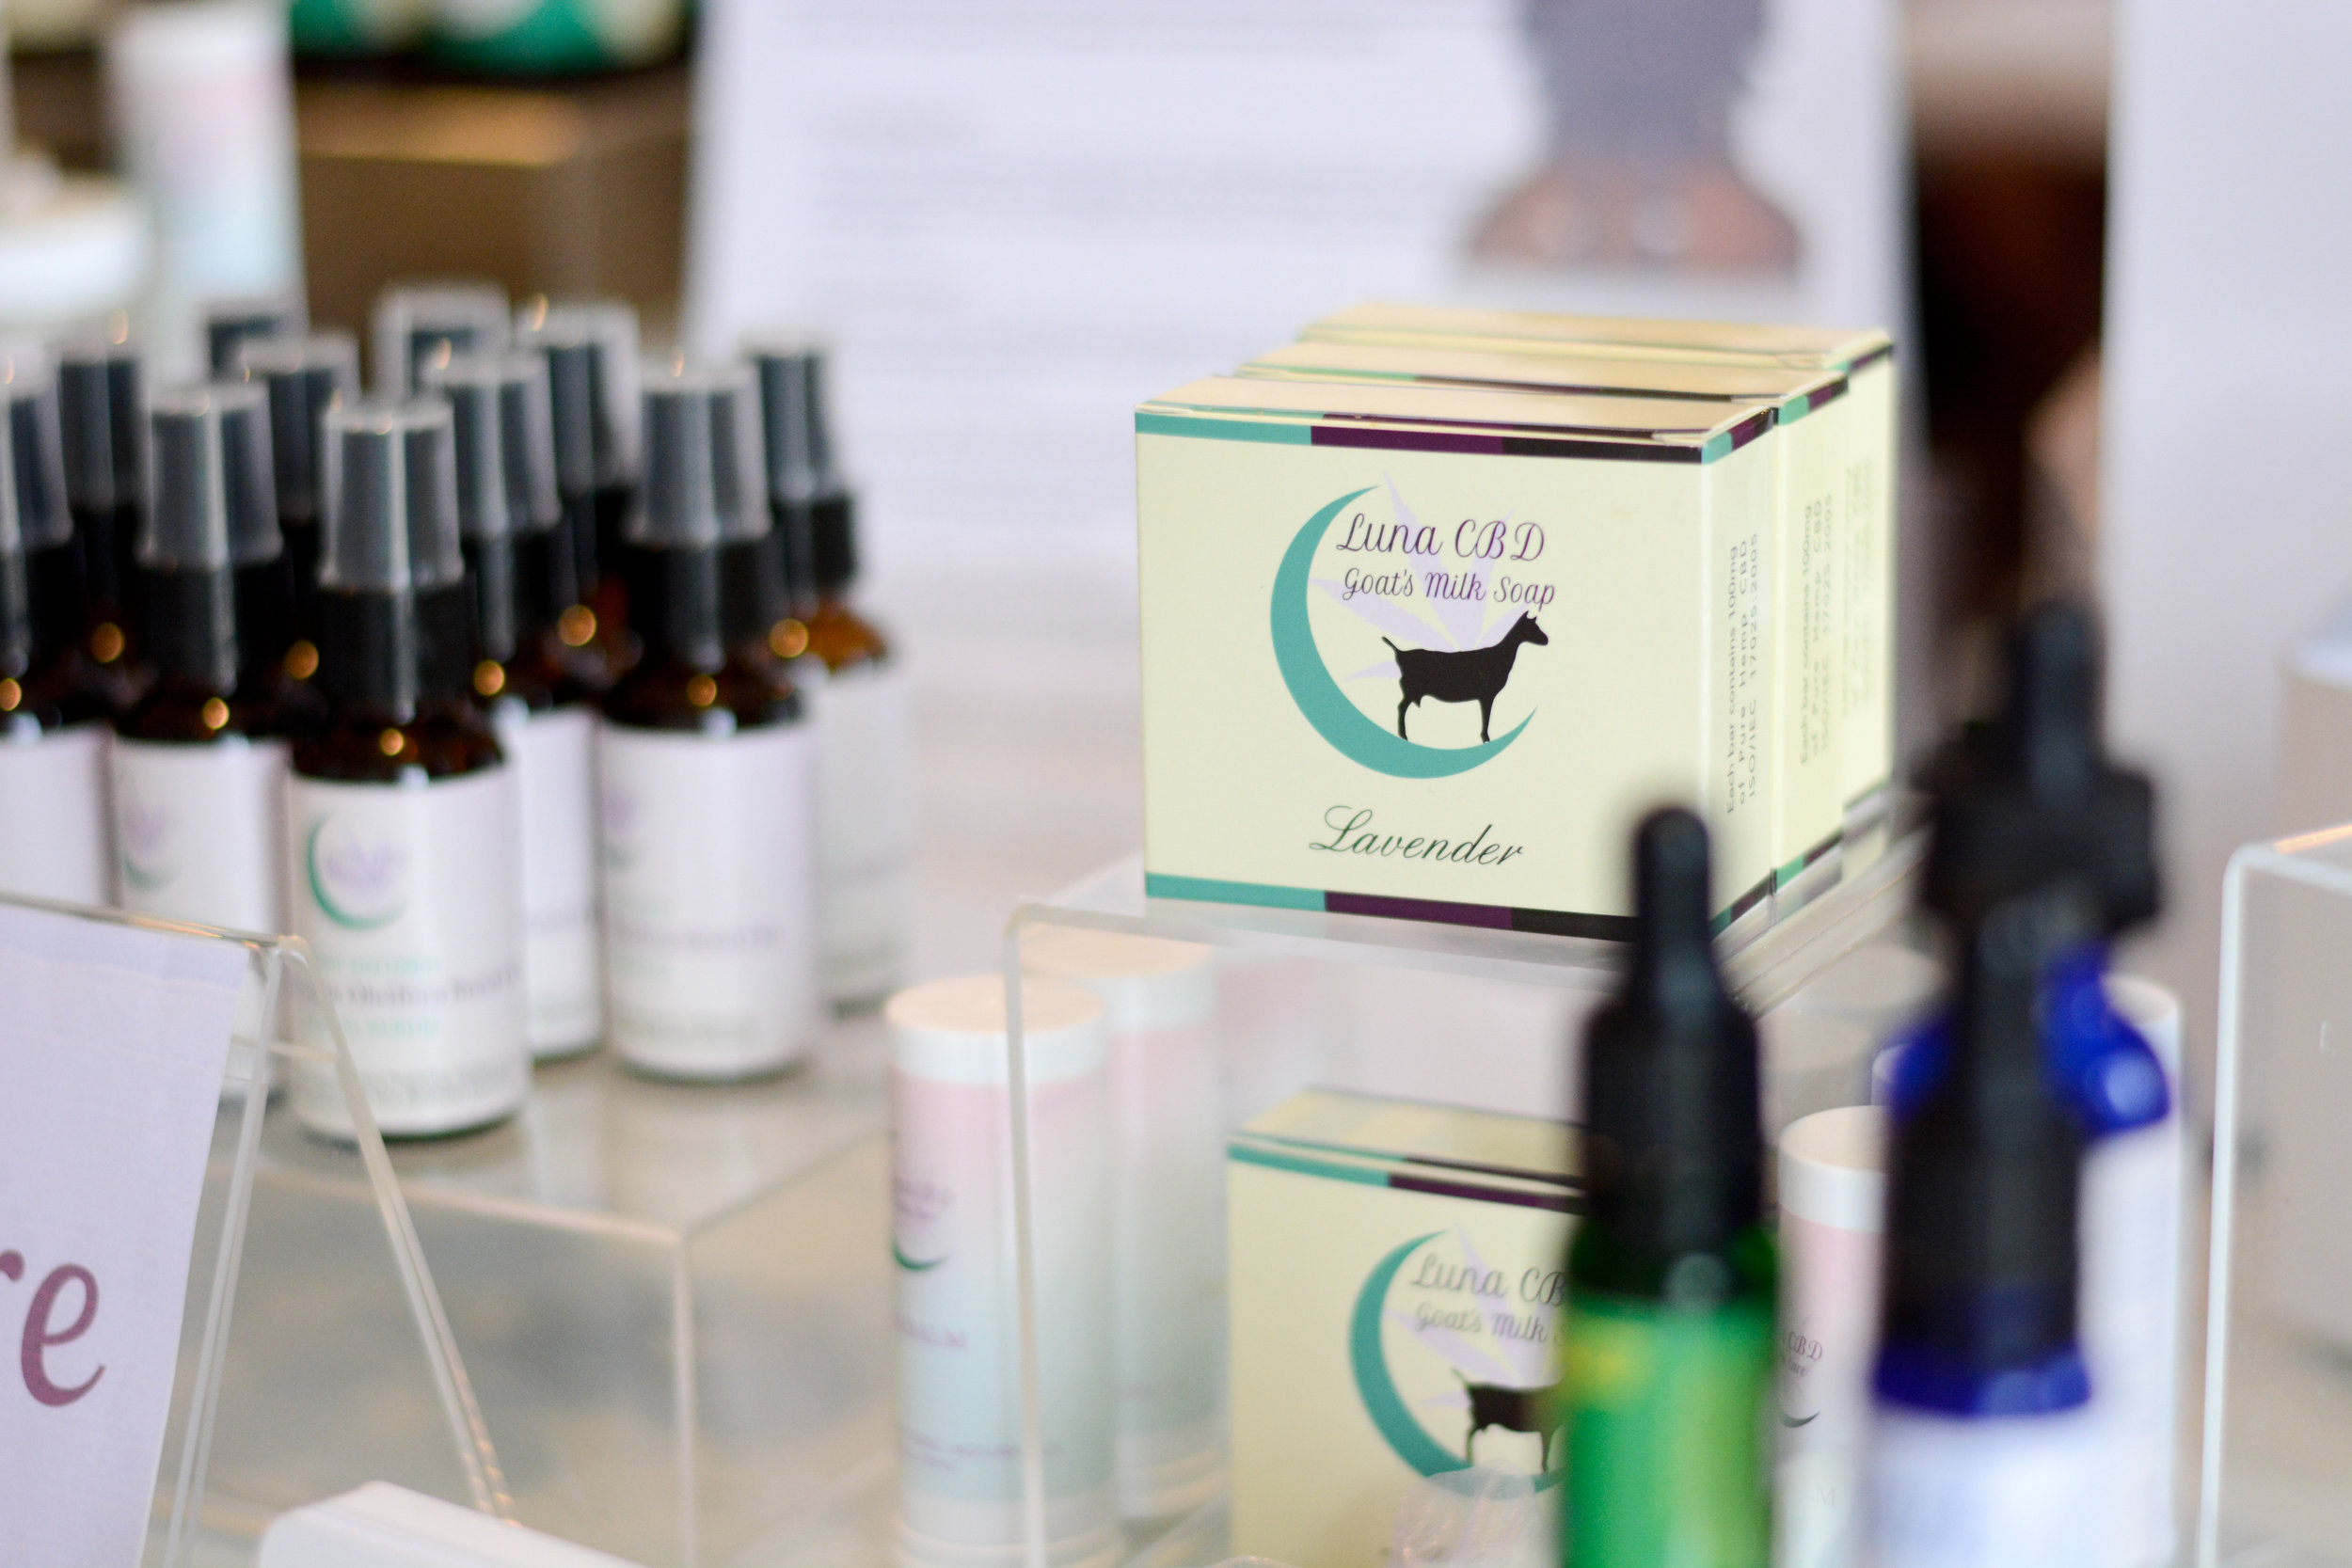 Another vendor that stopped is  Luna CBD Skin Care , with their collection of soothing plant based products.